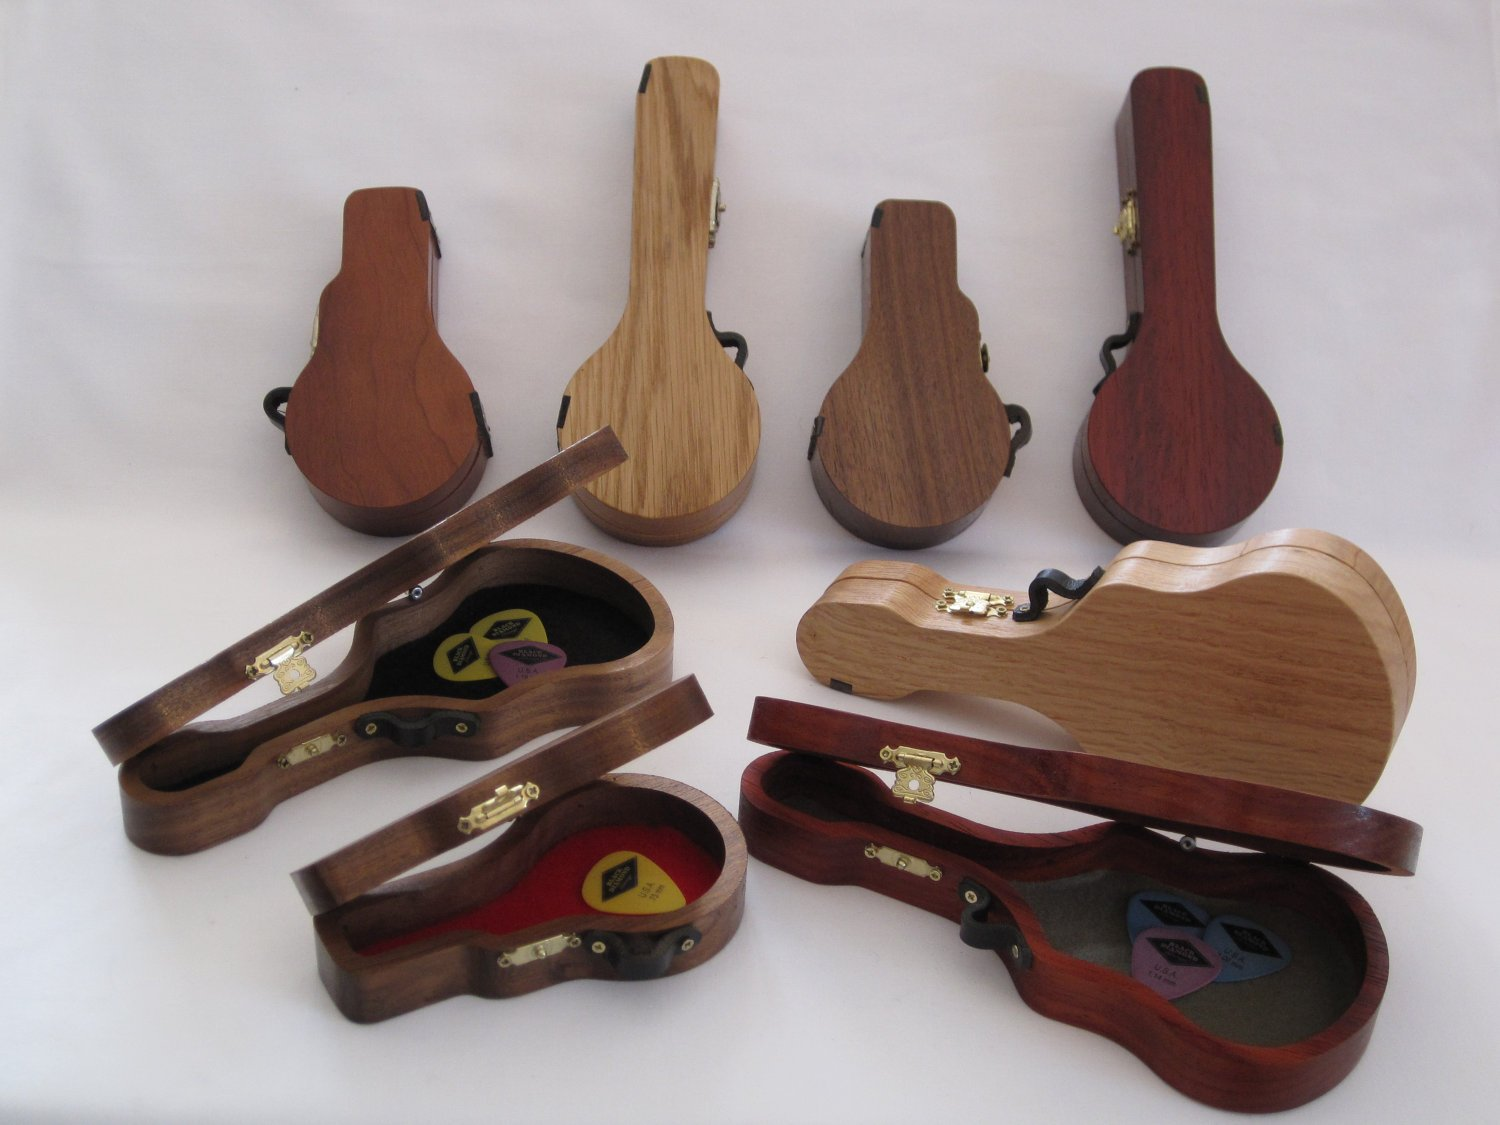 Pick Cases shaped like Guitars Banjos & Mandolins